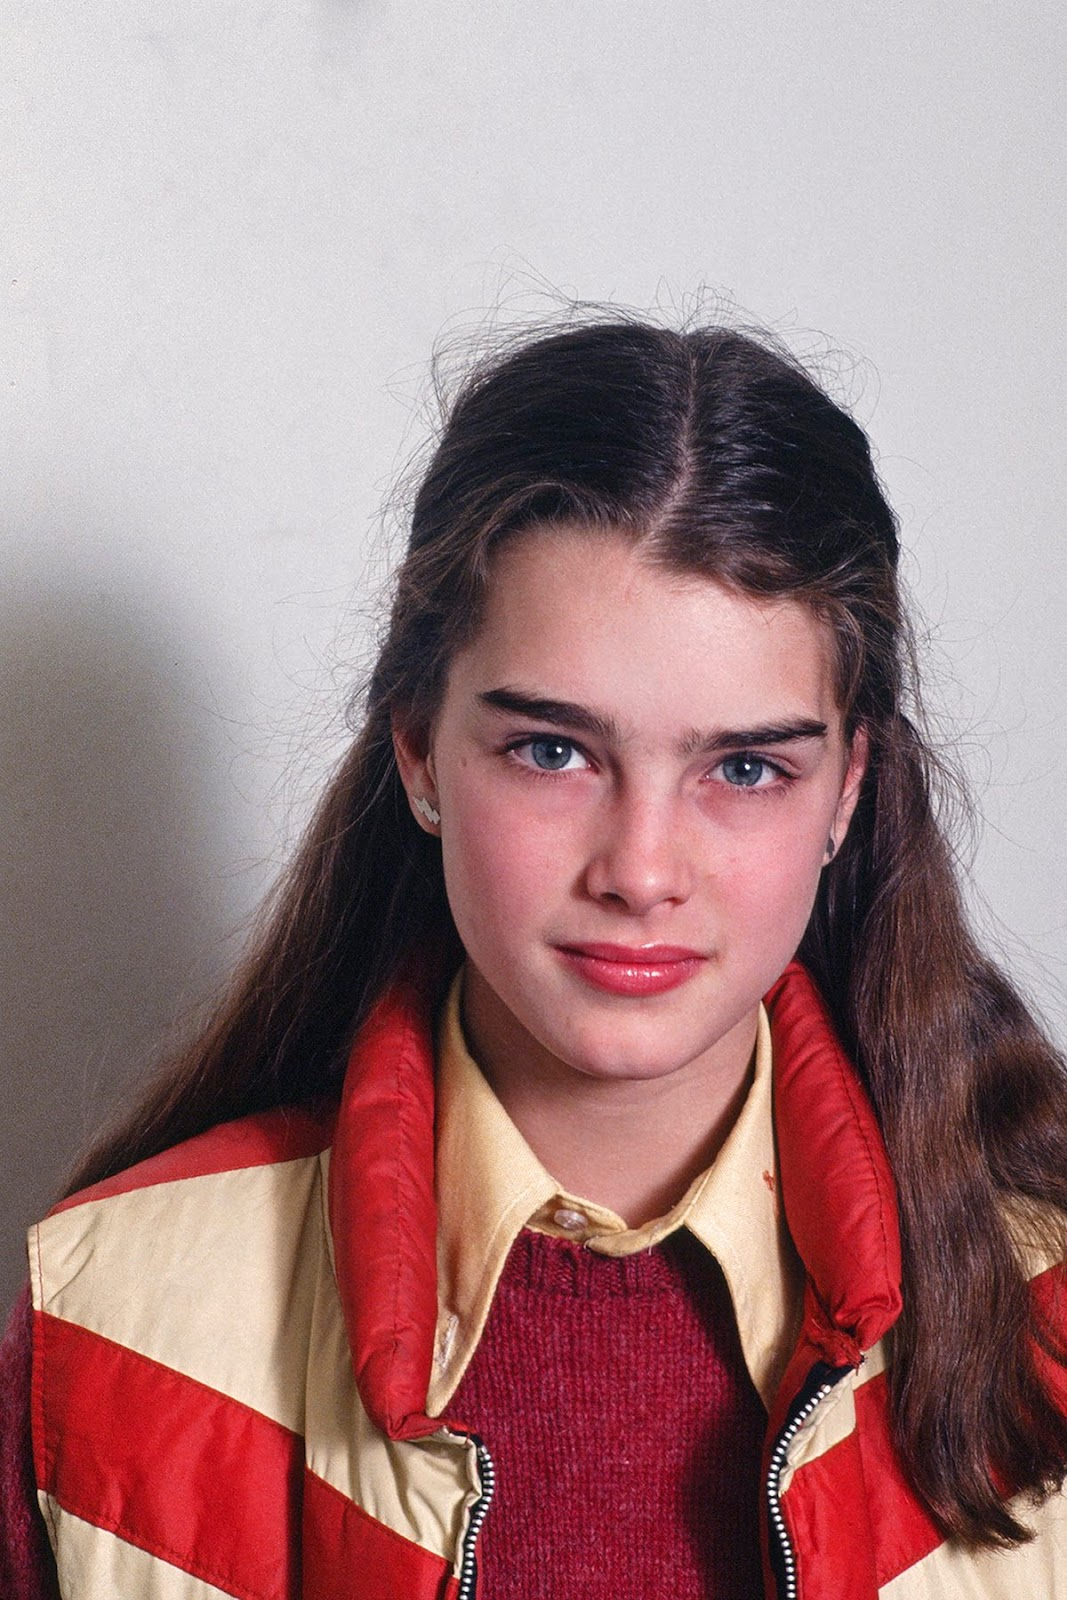 Rare and Beautiful Photos of Teenaged American Actress and Model Brooke  Shields in New York City in 1978 ~ vintage everyday